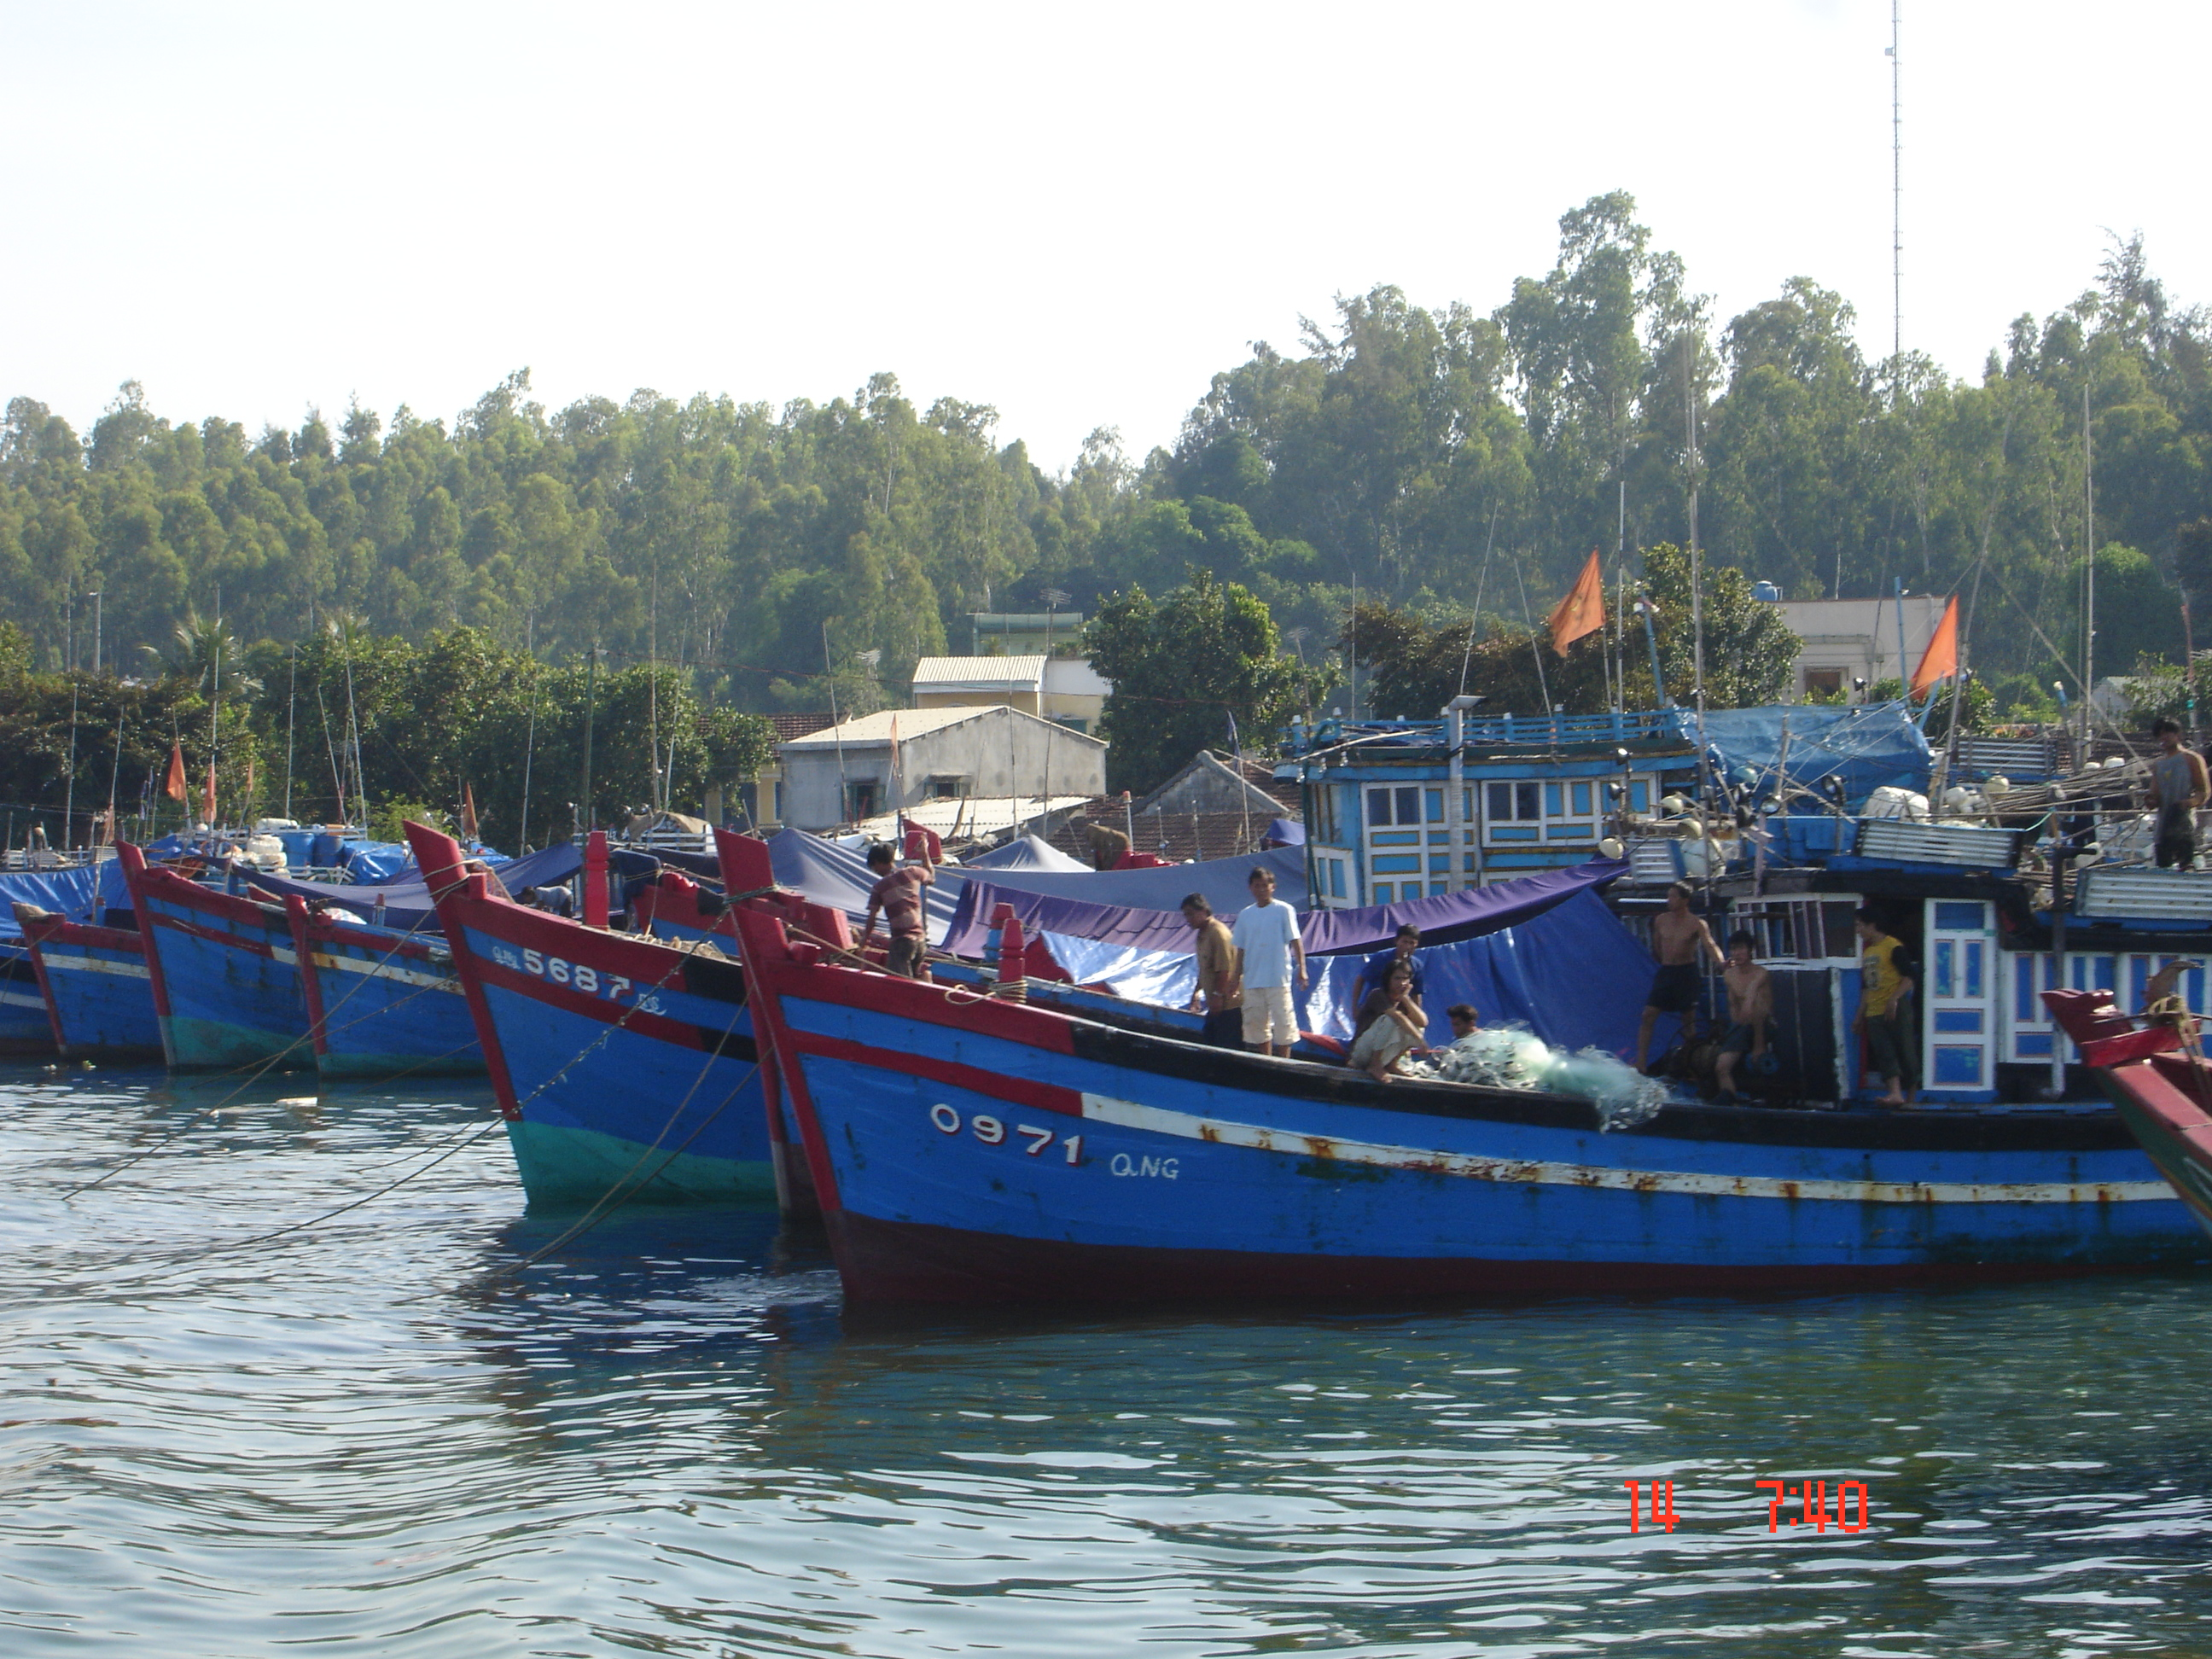 Phu Yen province: Reinforce withdraw and transfer vessel monitoring devices